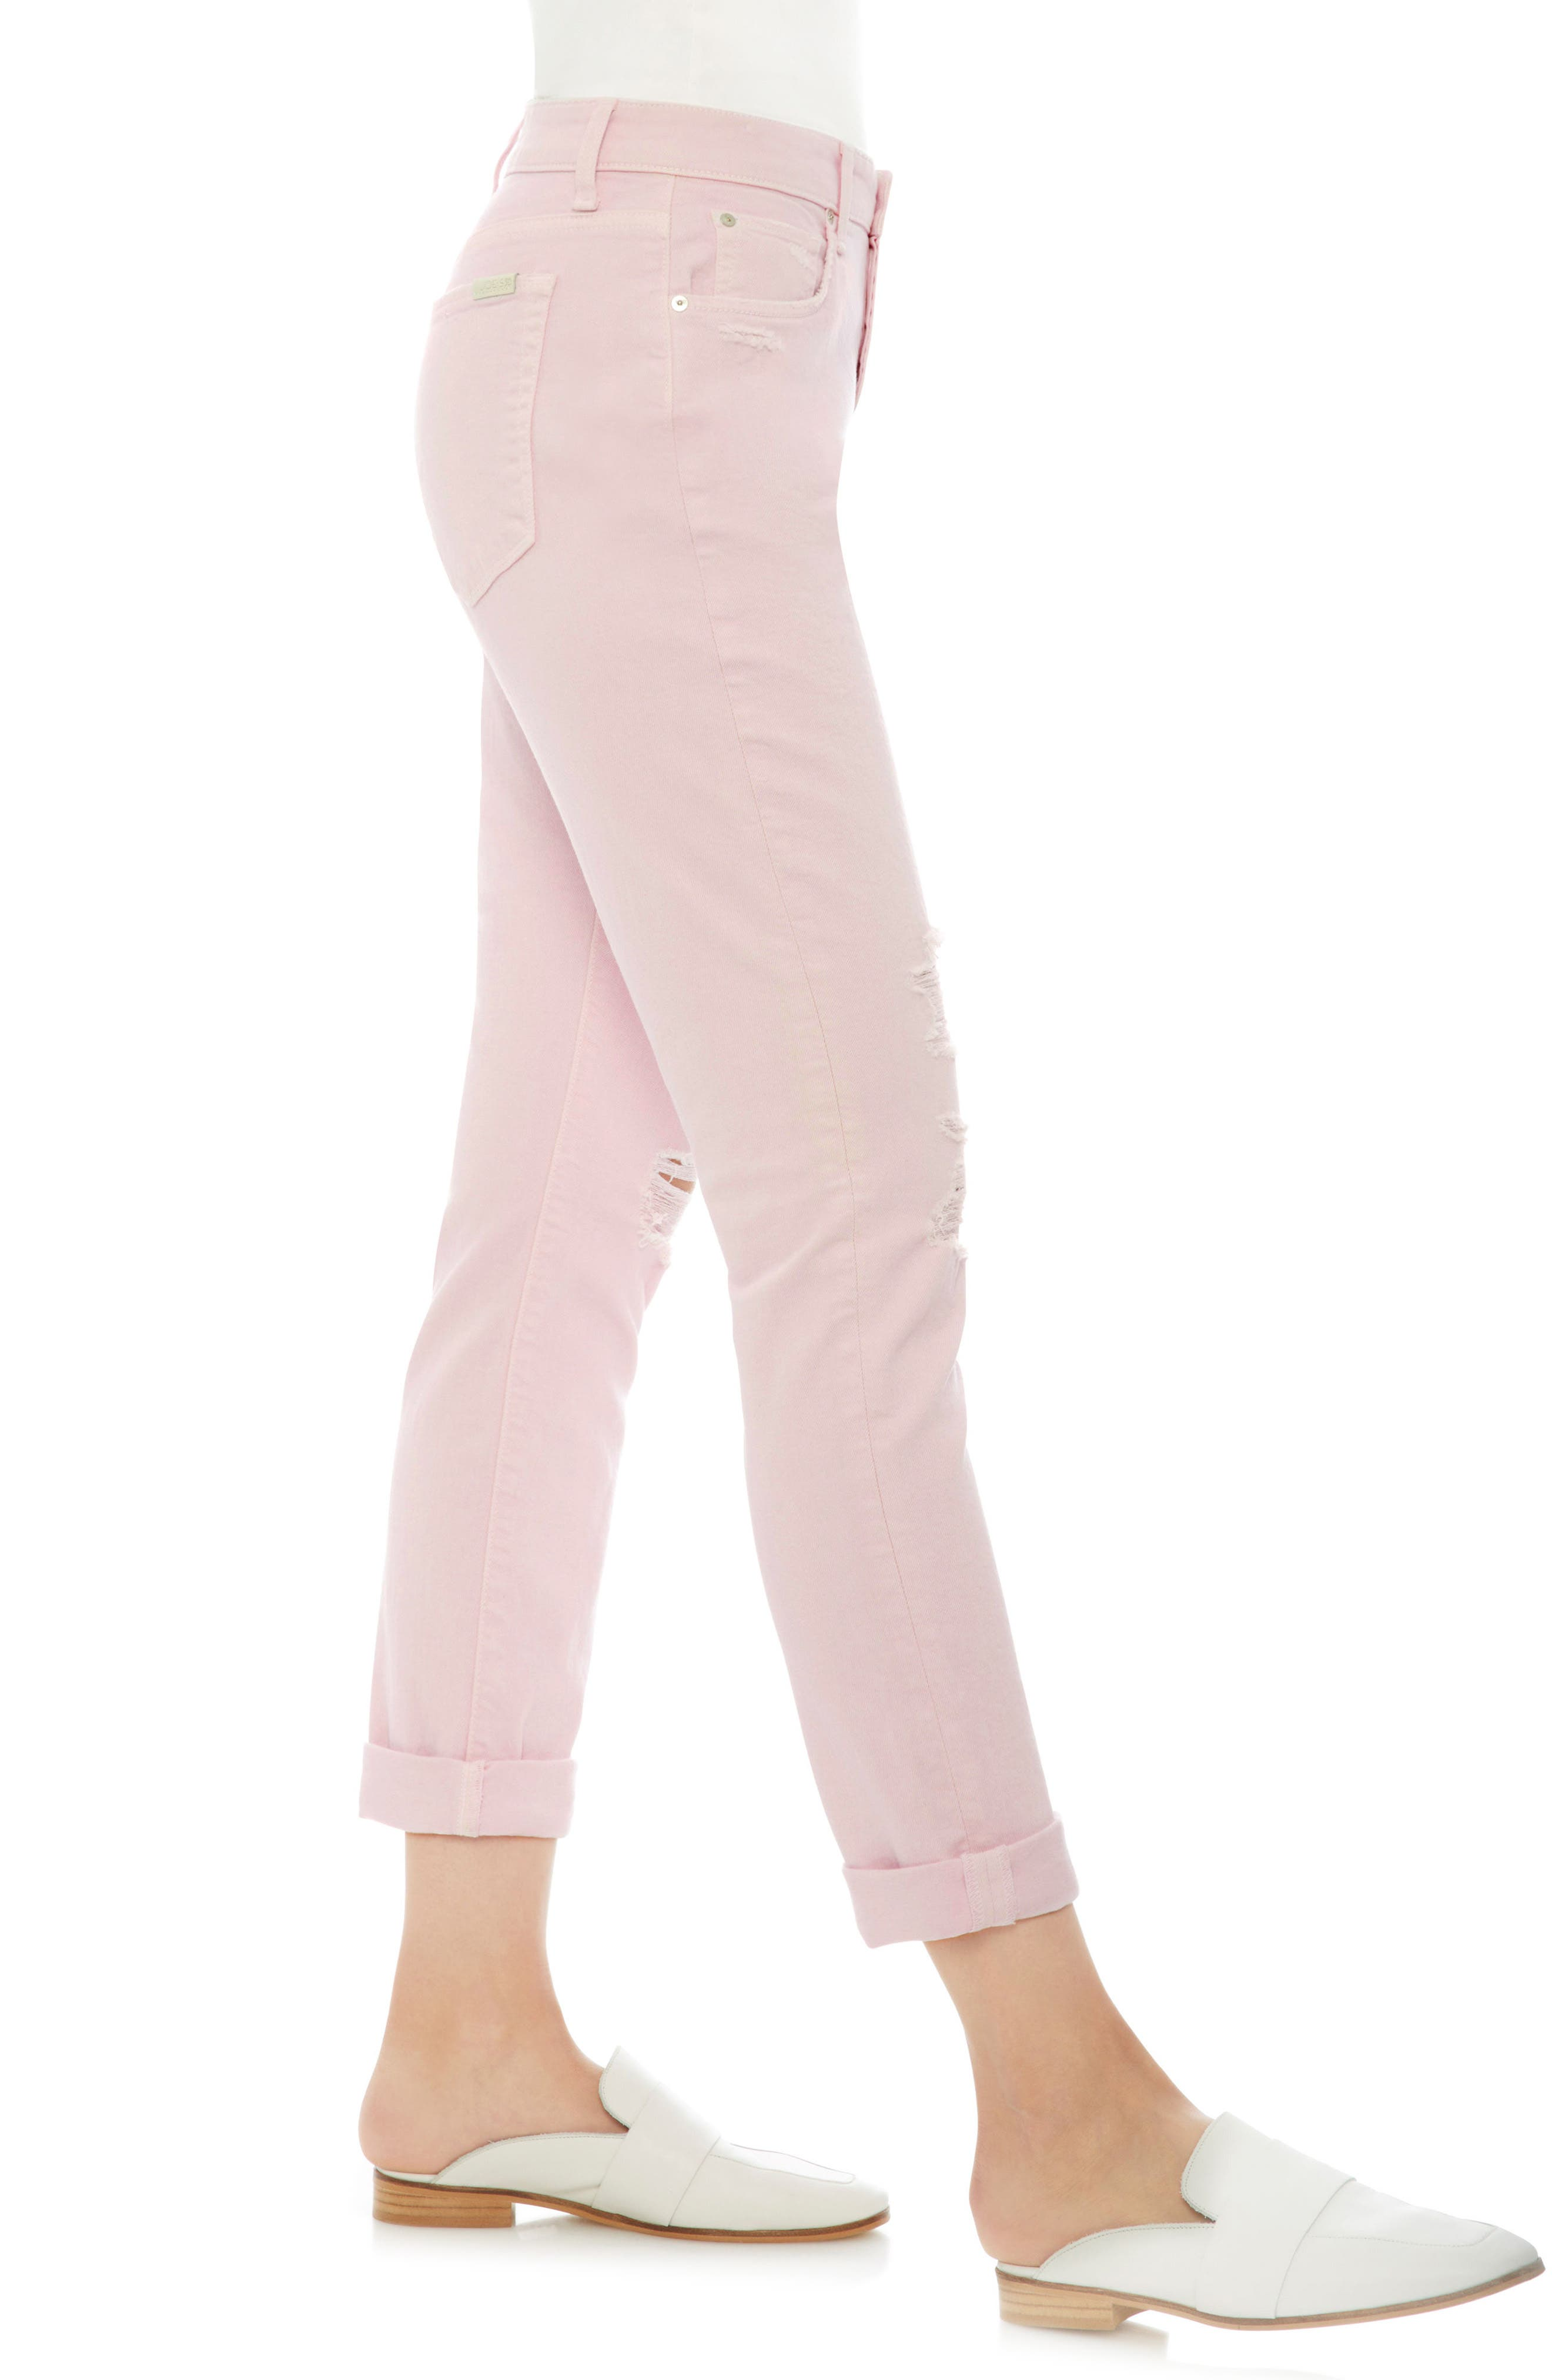 Smith Ripped High Waist Crop Slim Jeans,                             Alternate thumbnail 3, color,                             Parfait Pink